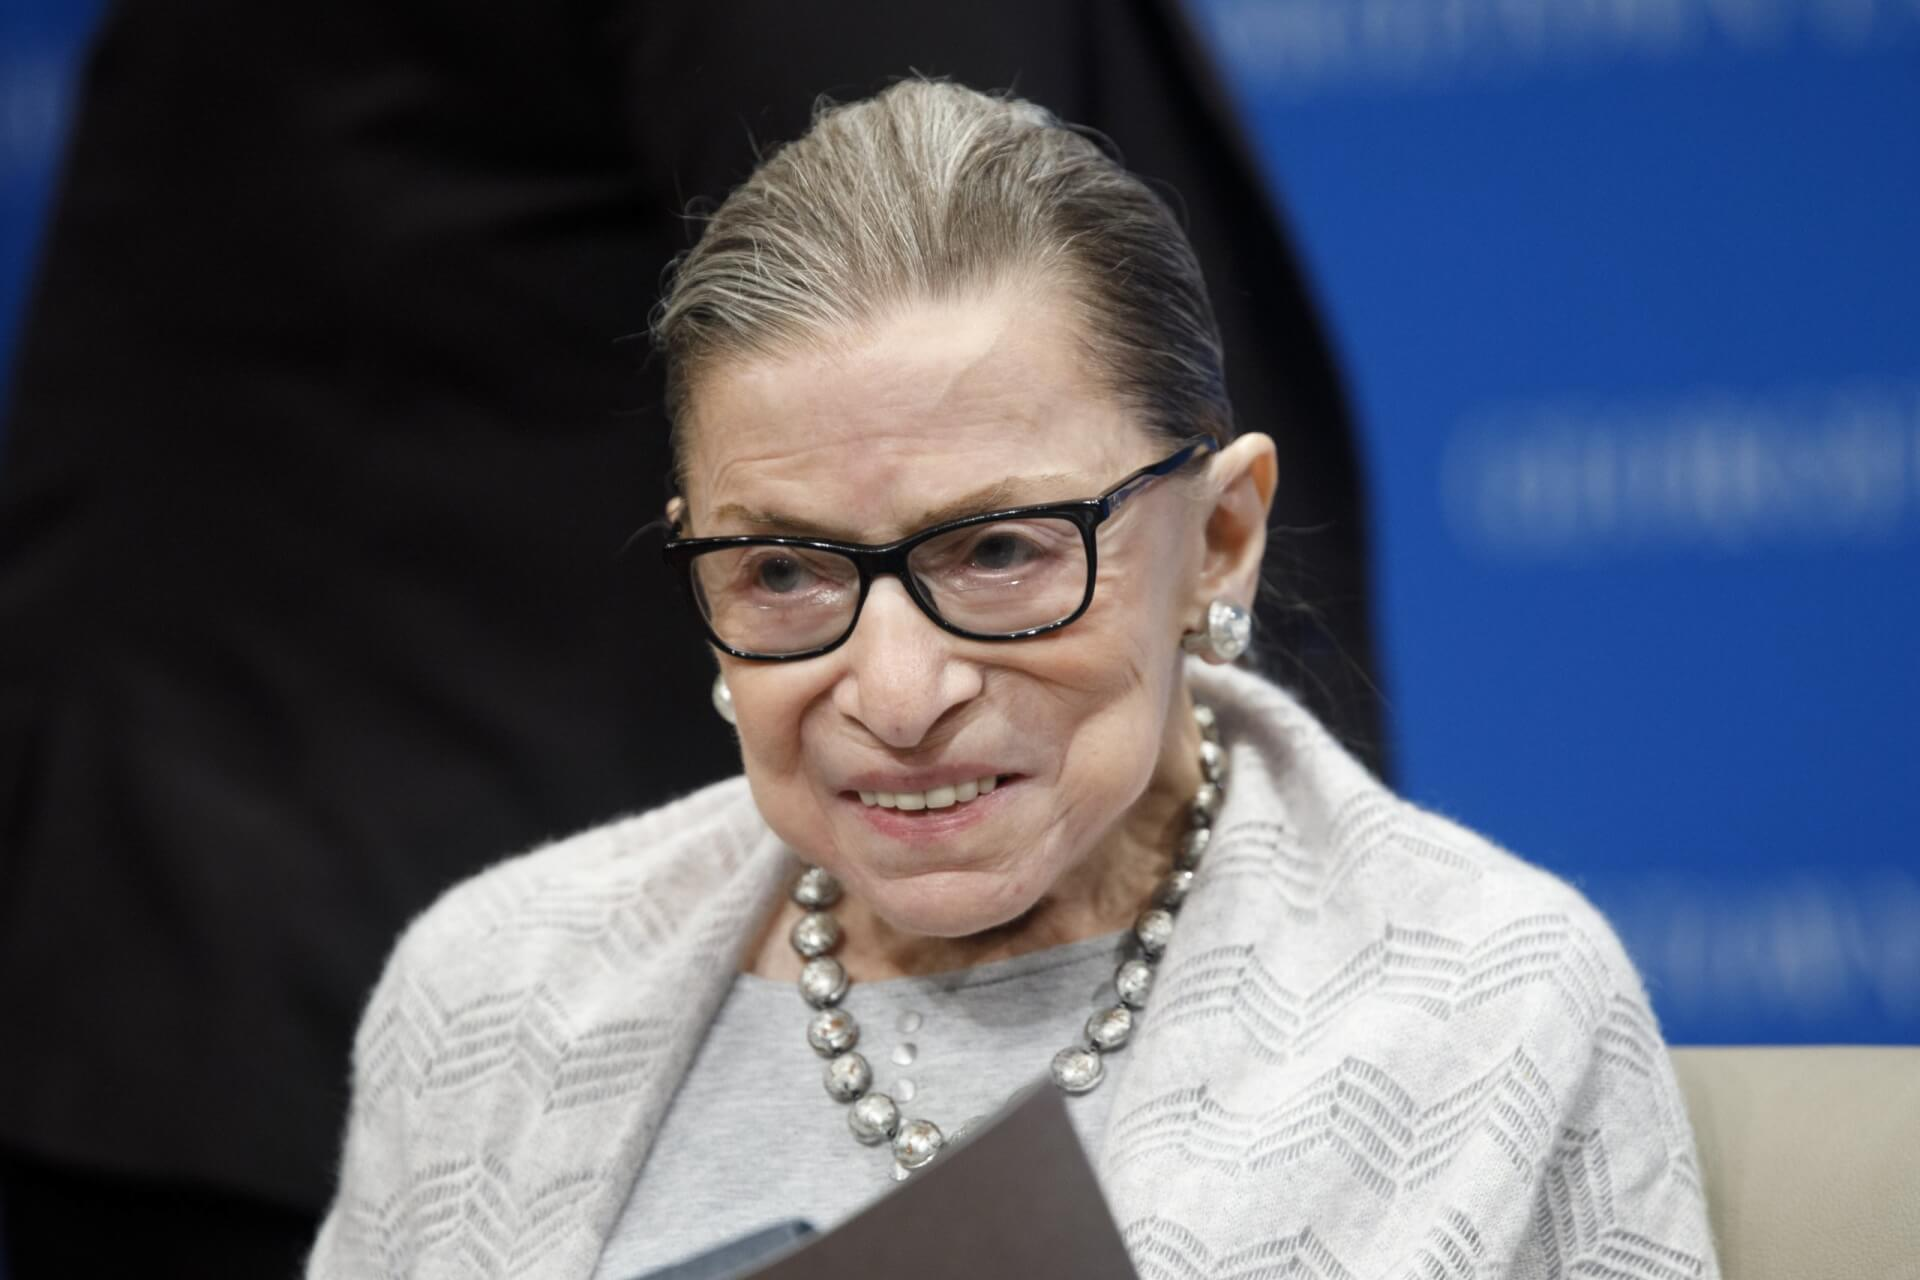 RBG is gone. This is why we fight.